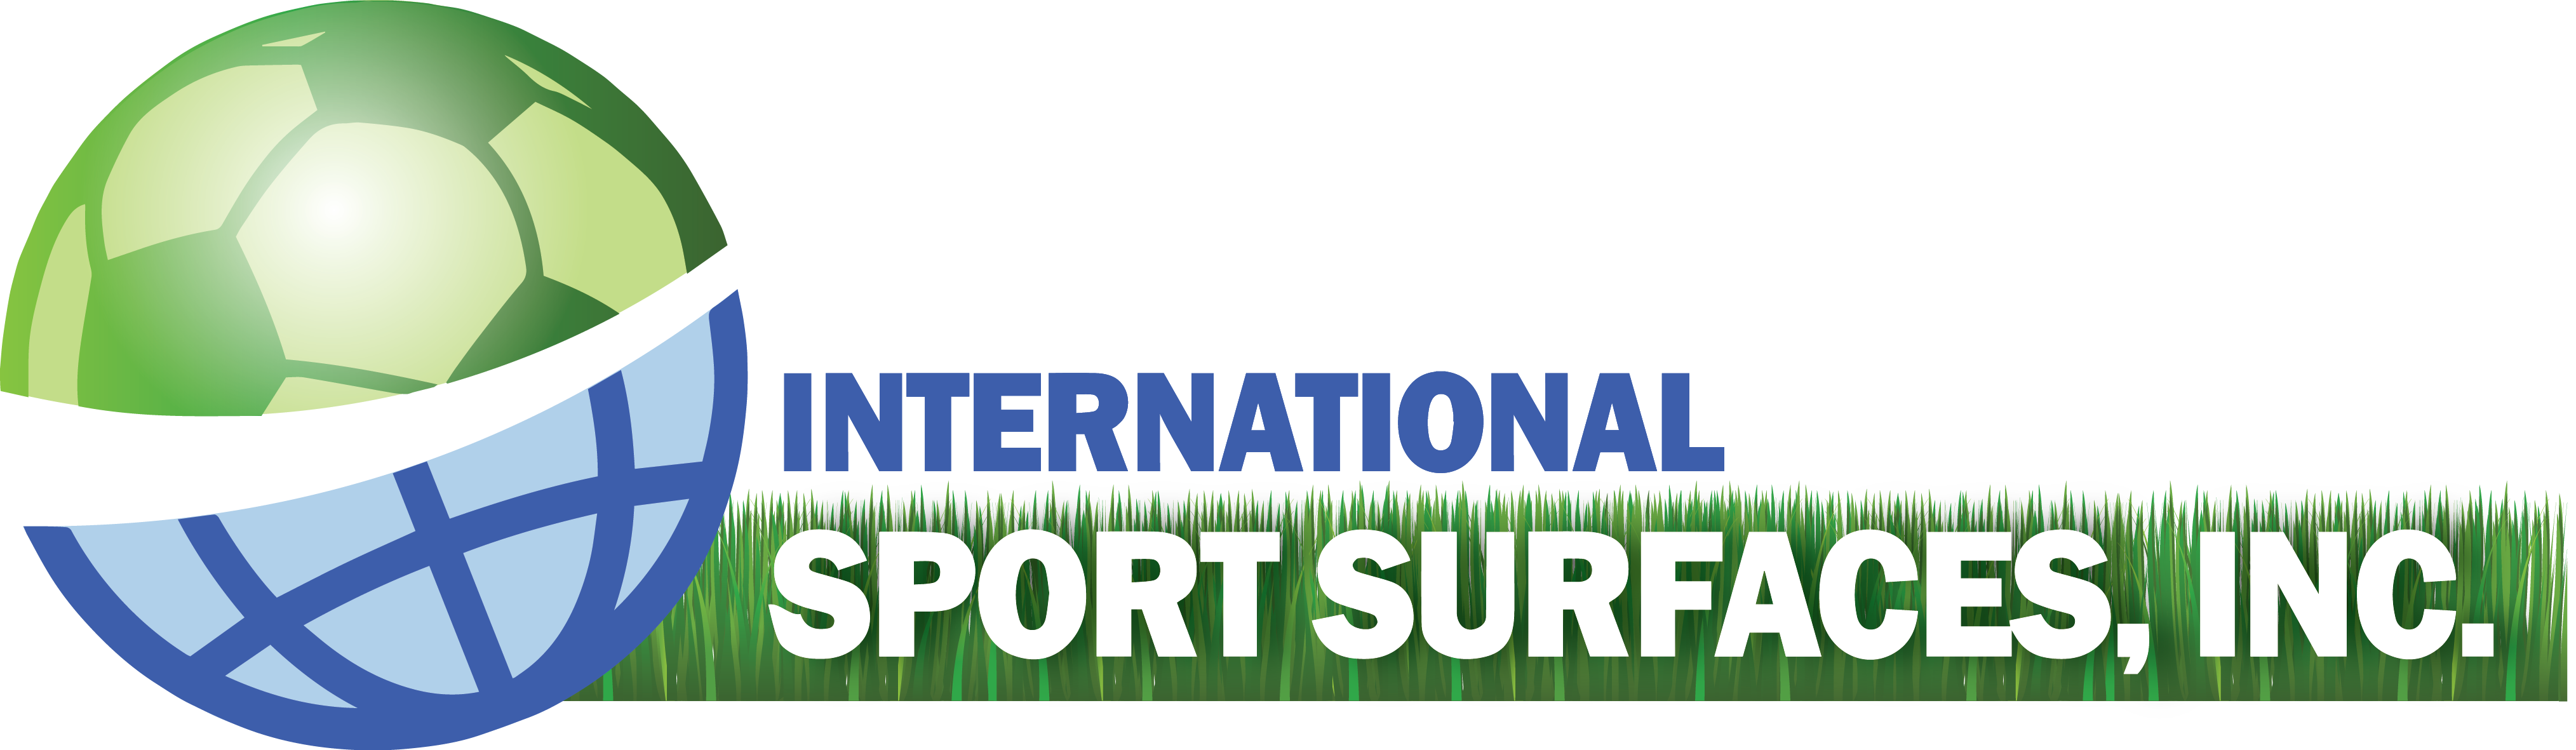 International Sport Surfaces, Inc. Logo